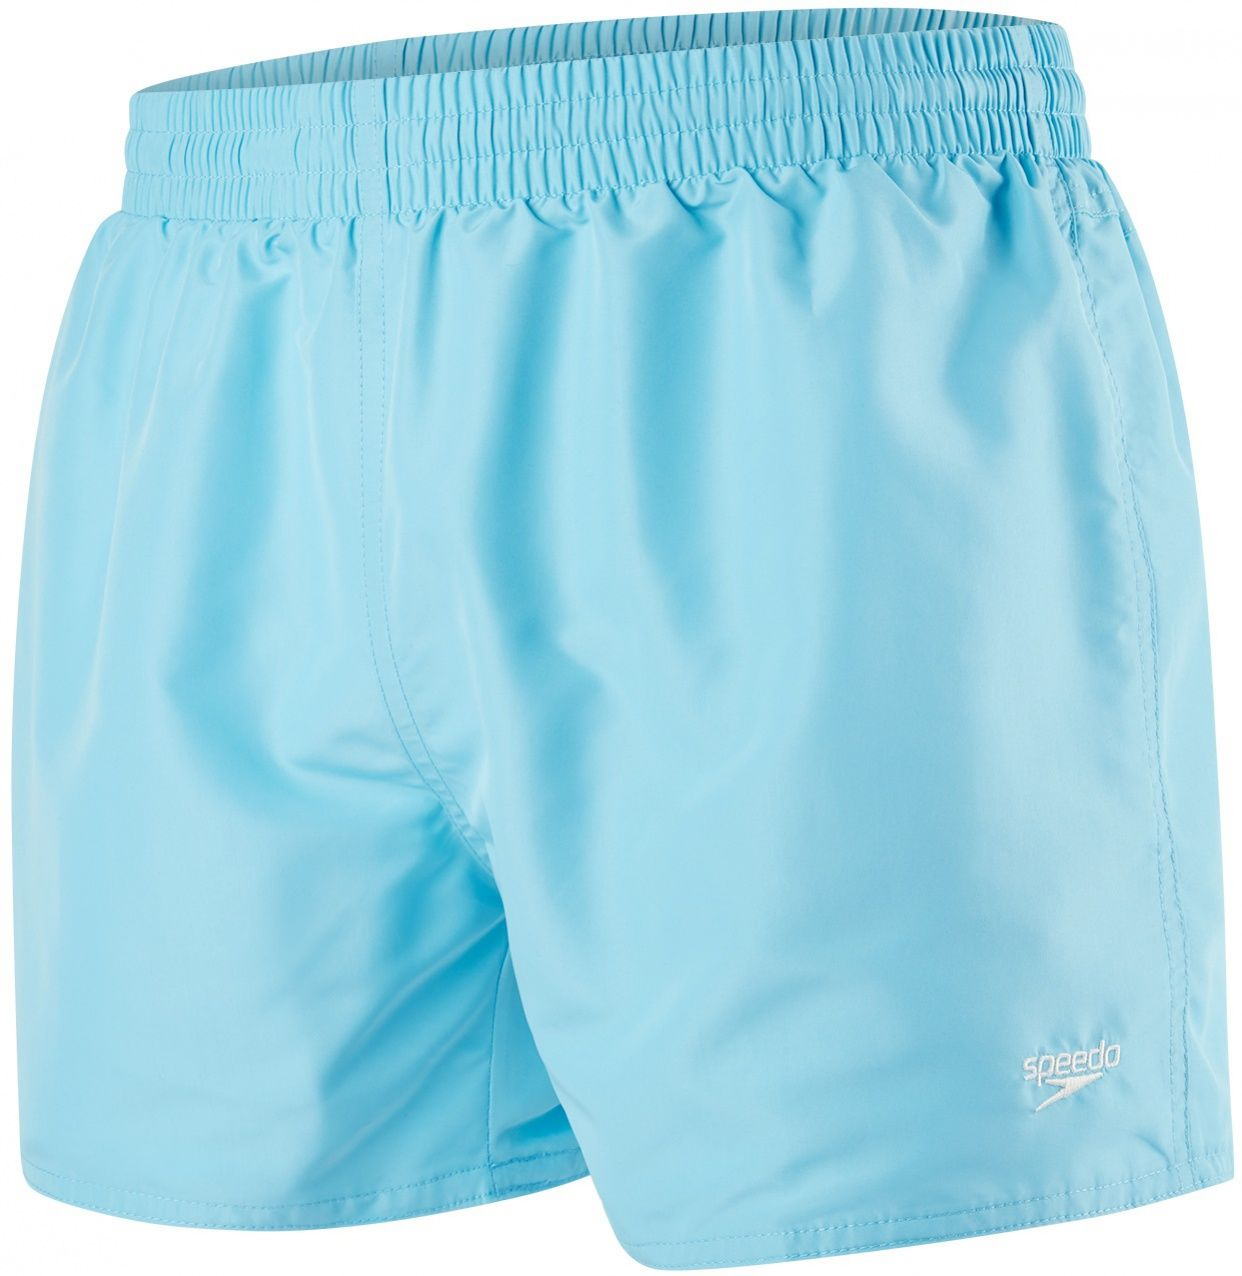 """Speedo fitted leisure 13"""" watershort turquoise s"""